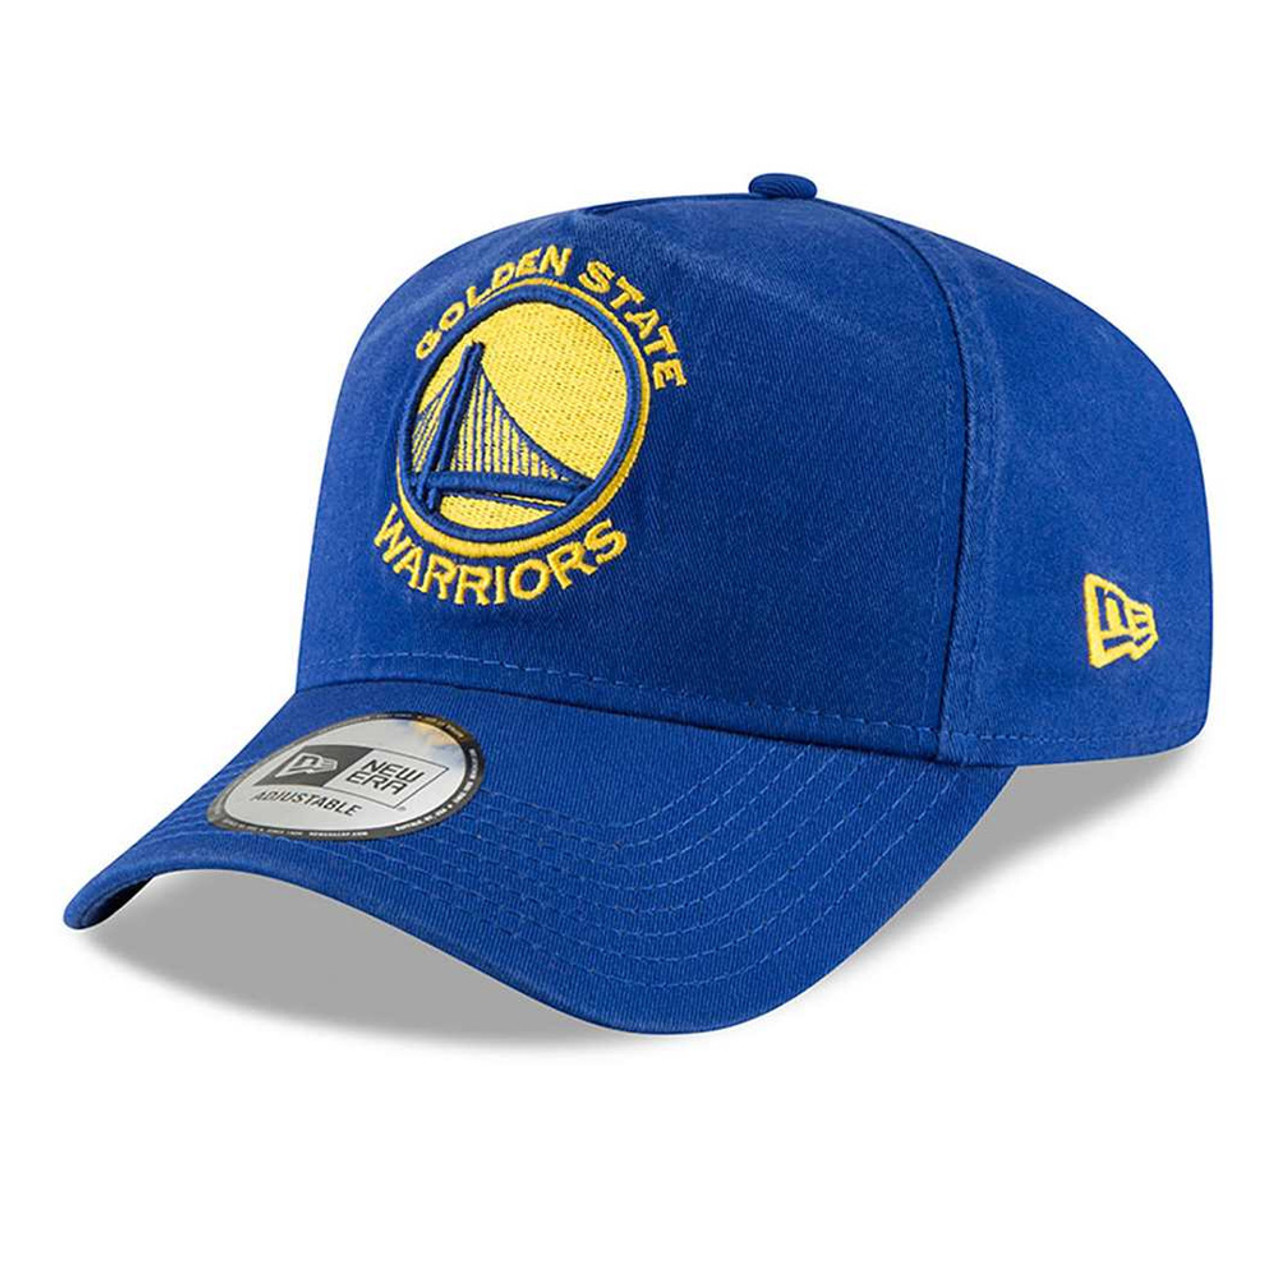 new arrival 473b2 57ef3 NEW ERA golden state warriors adjustable NBA basketball cap  aframe blue